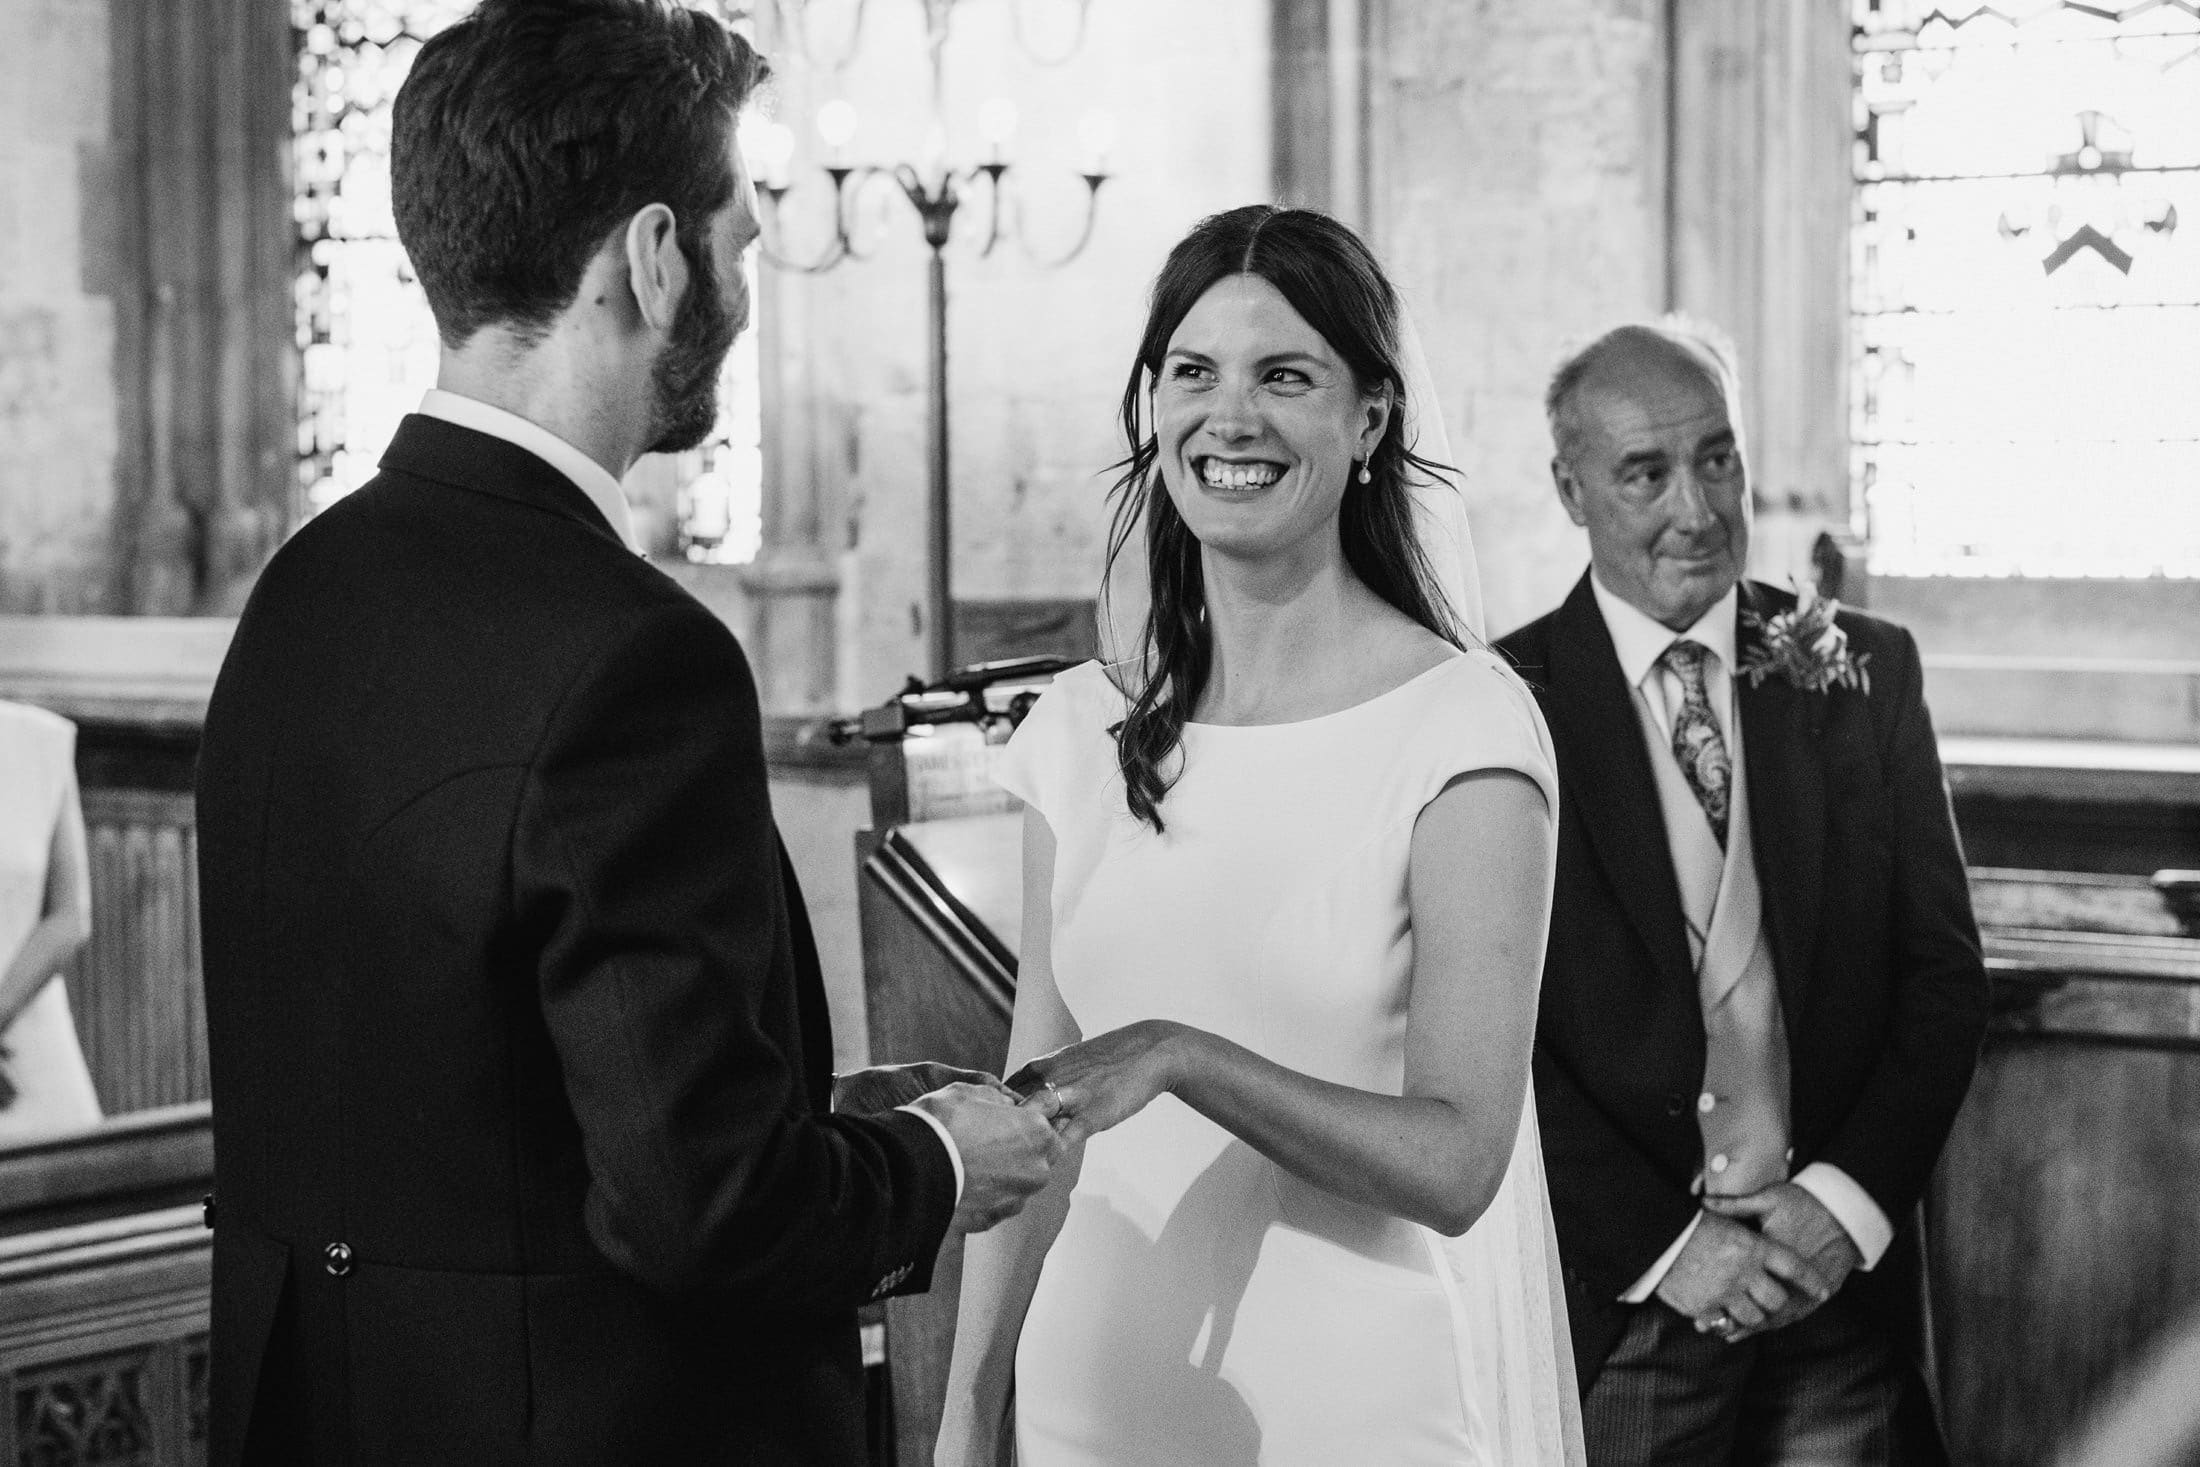 Bride and groom exchange rings and promises at an intimate London wedding ceremony. Black & white documentary style photography.